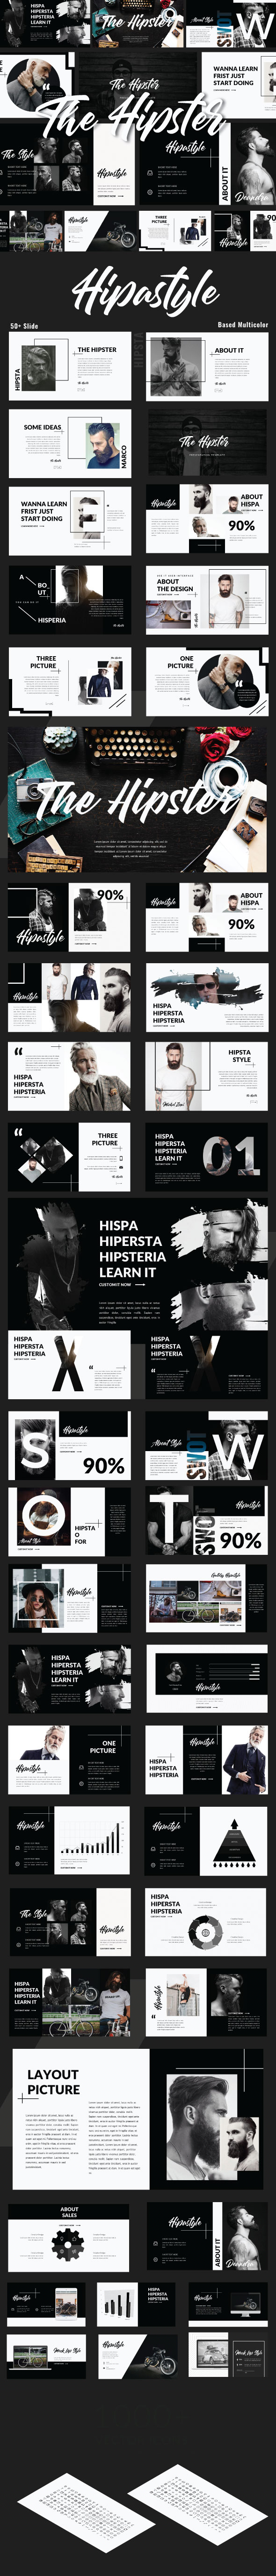 The Hipster Presentation